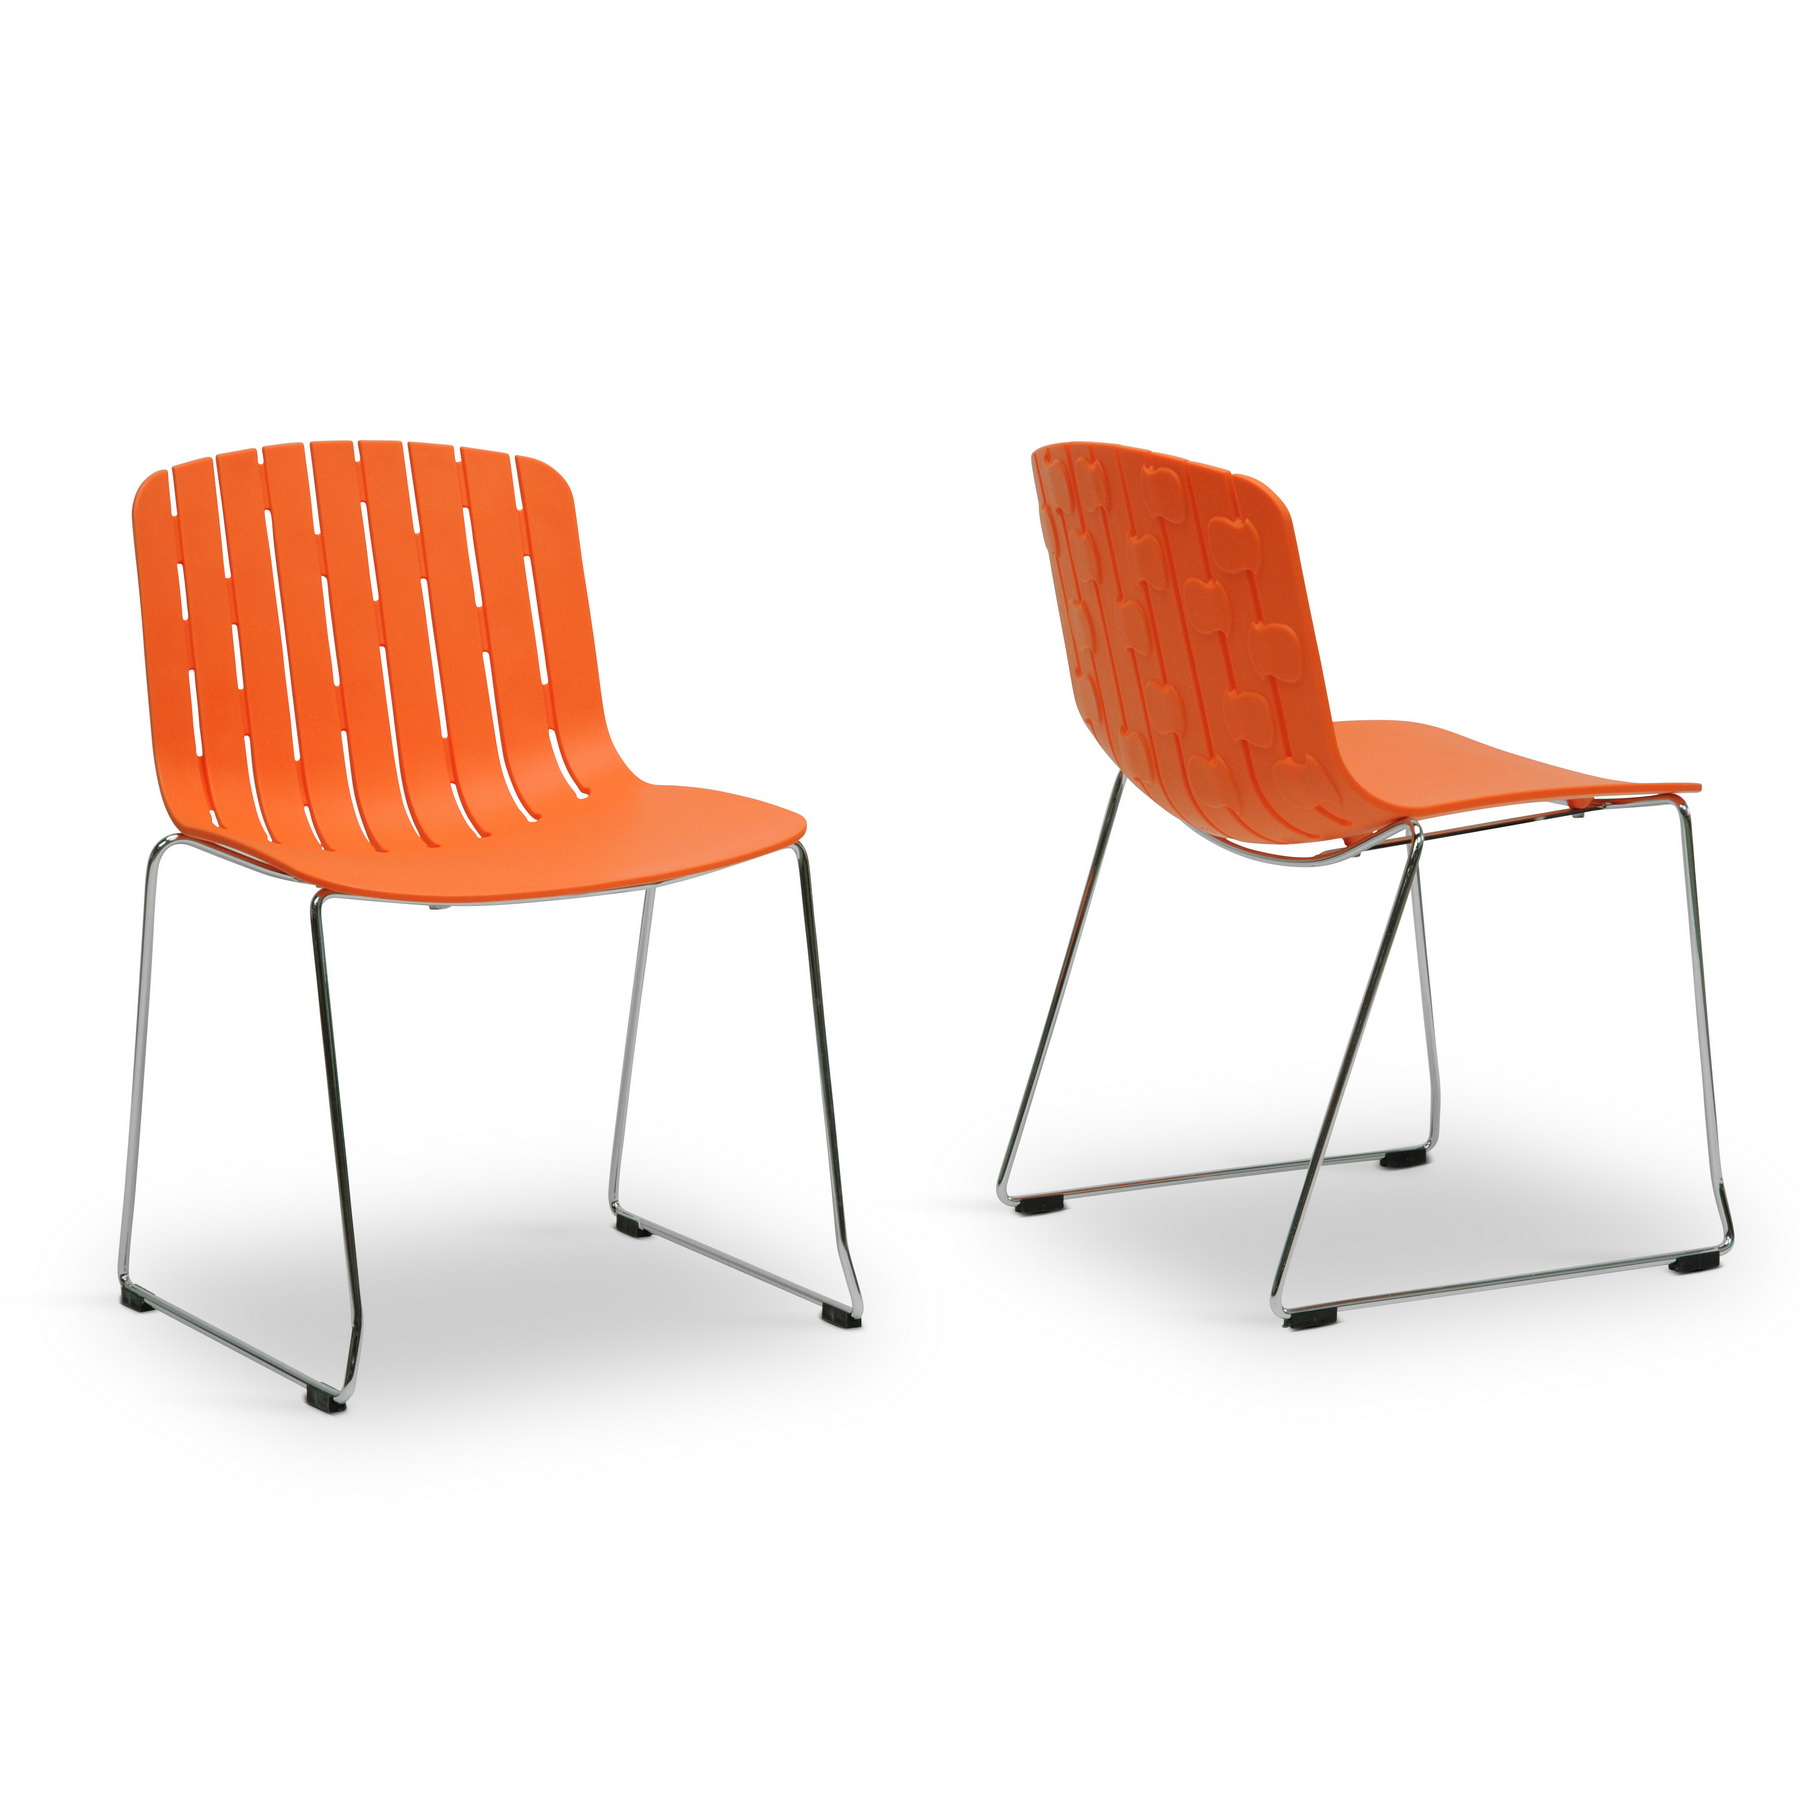 modern plastic chair covers for sale ireland kmart